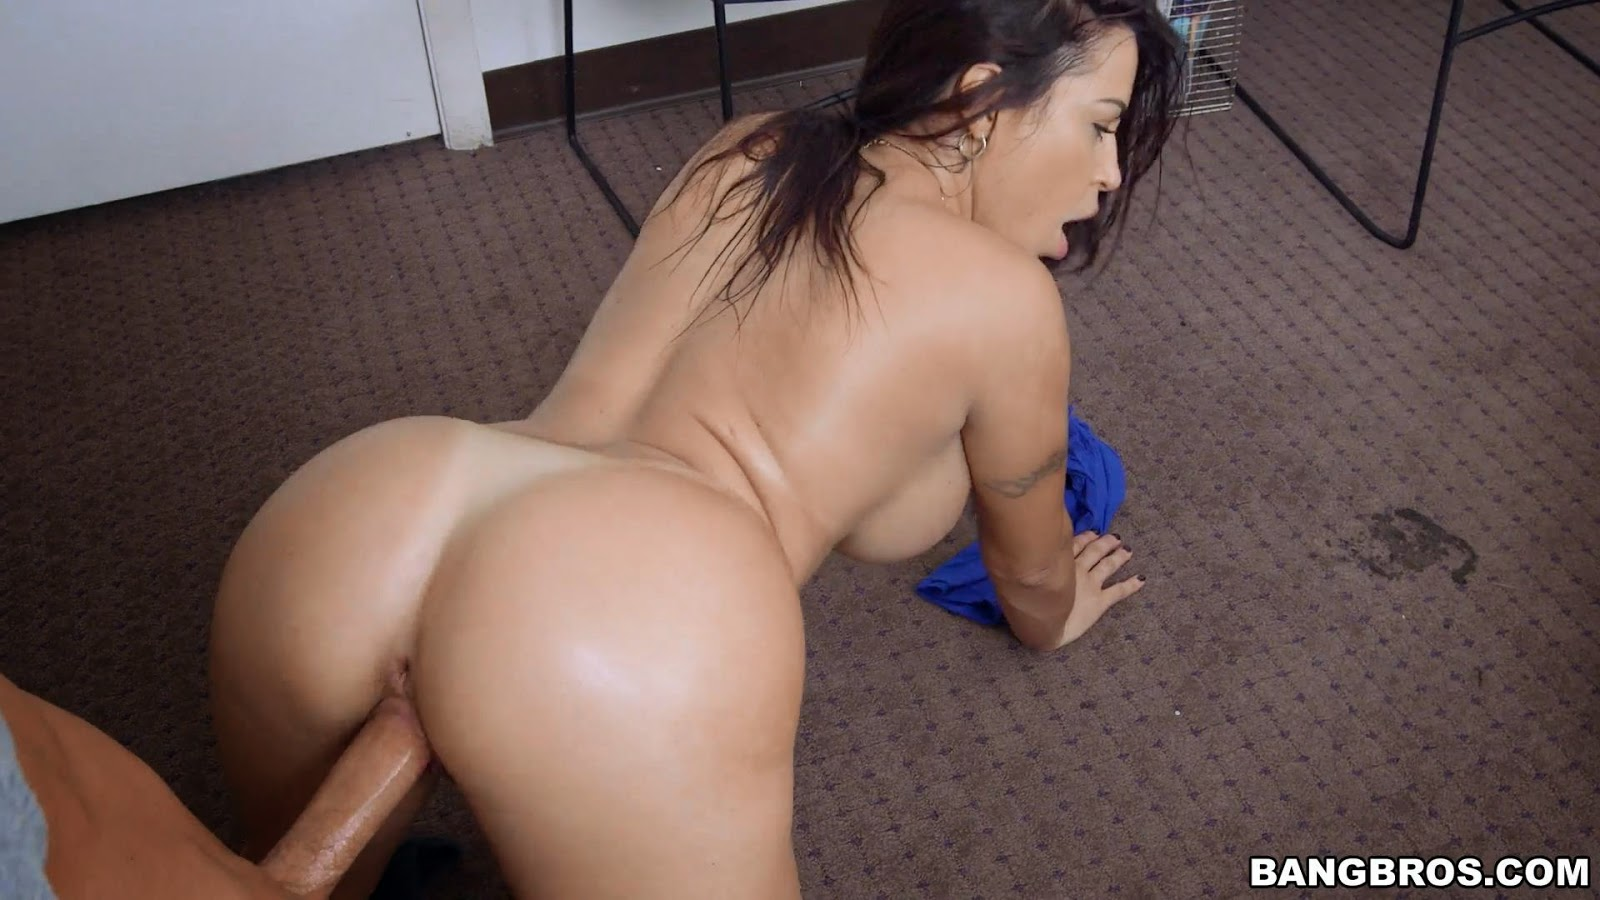 Could see milf gifs xxx vid!